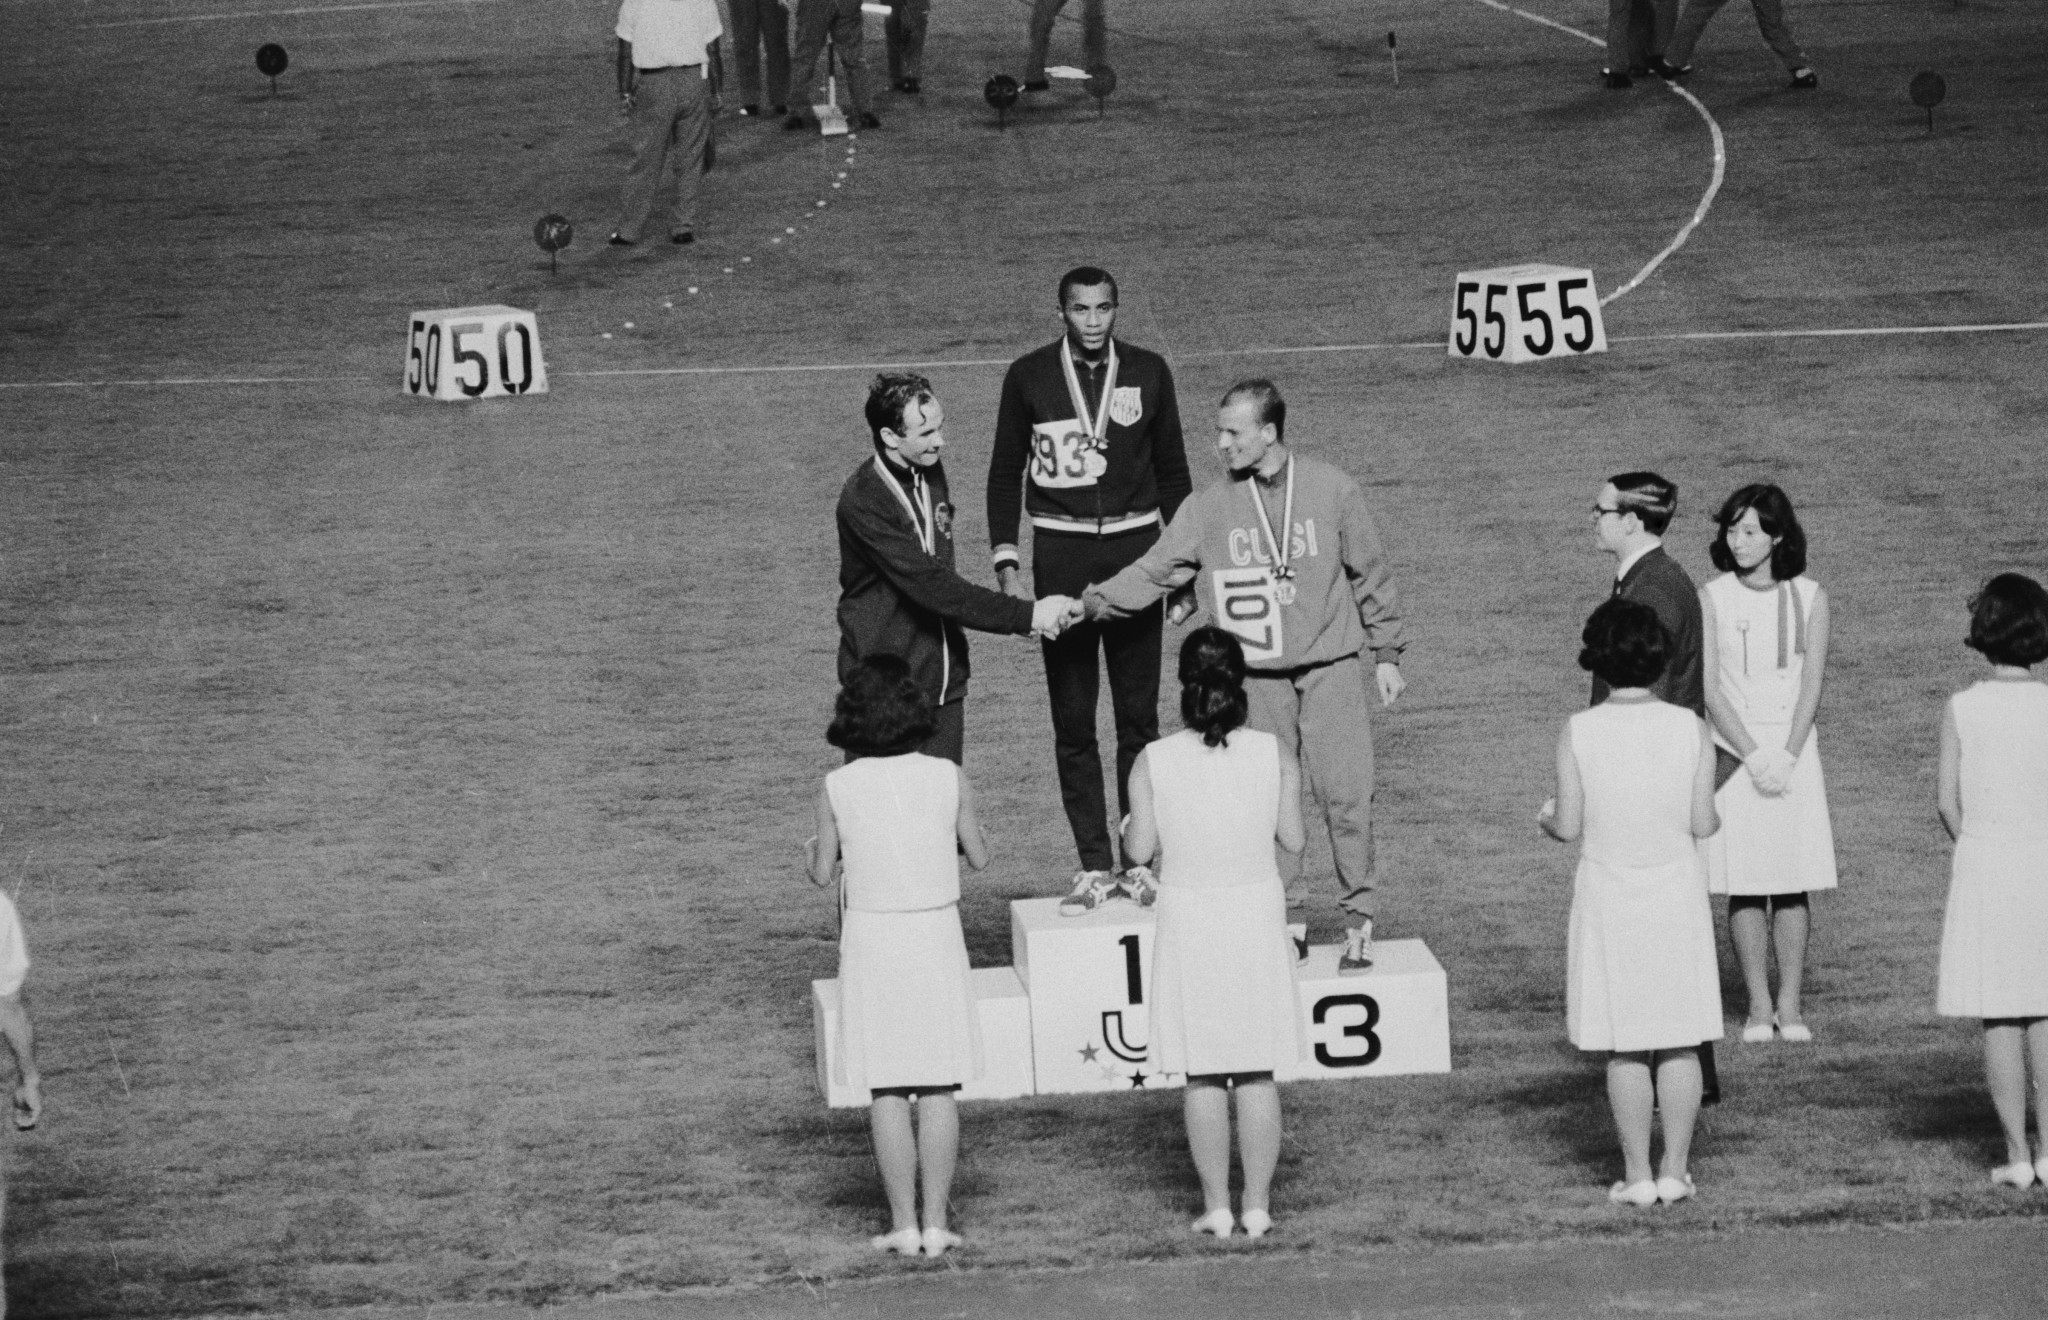 The three winners of the men's 200 metres dash mount the rostrum at the World University Games in Tokyo, held at the Universiade, 7th September 1967. From left to right, they are Britain's Menzies Cambell, T. Smith of the USA, and Italy's I. Giani. © Keystone/Hulton Archive/Getty Images